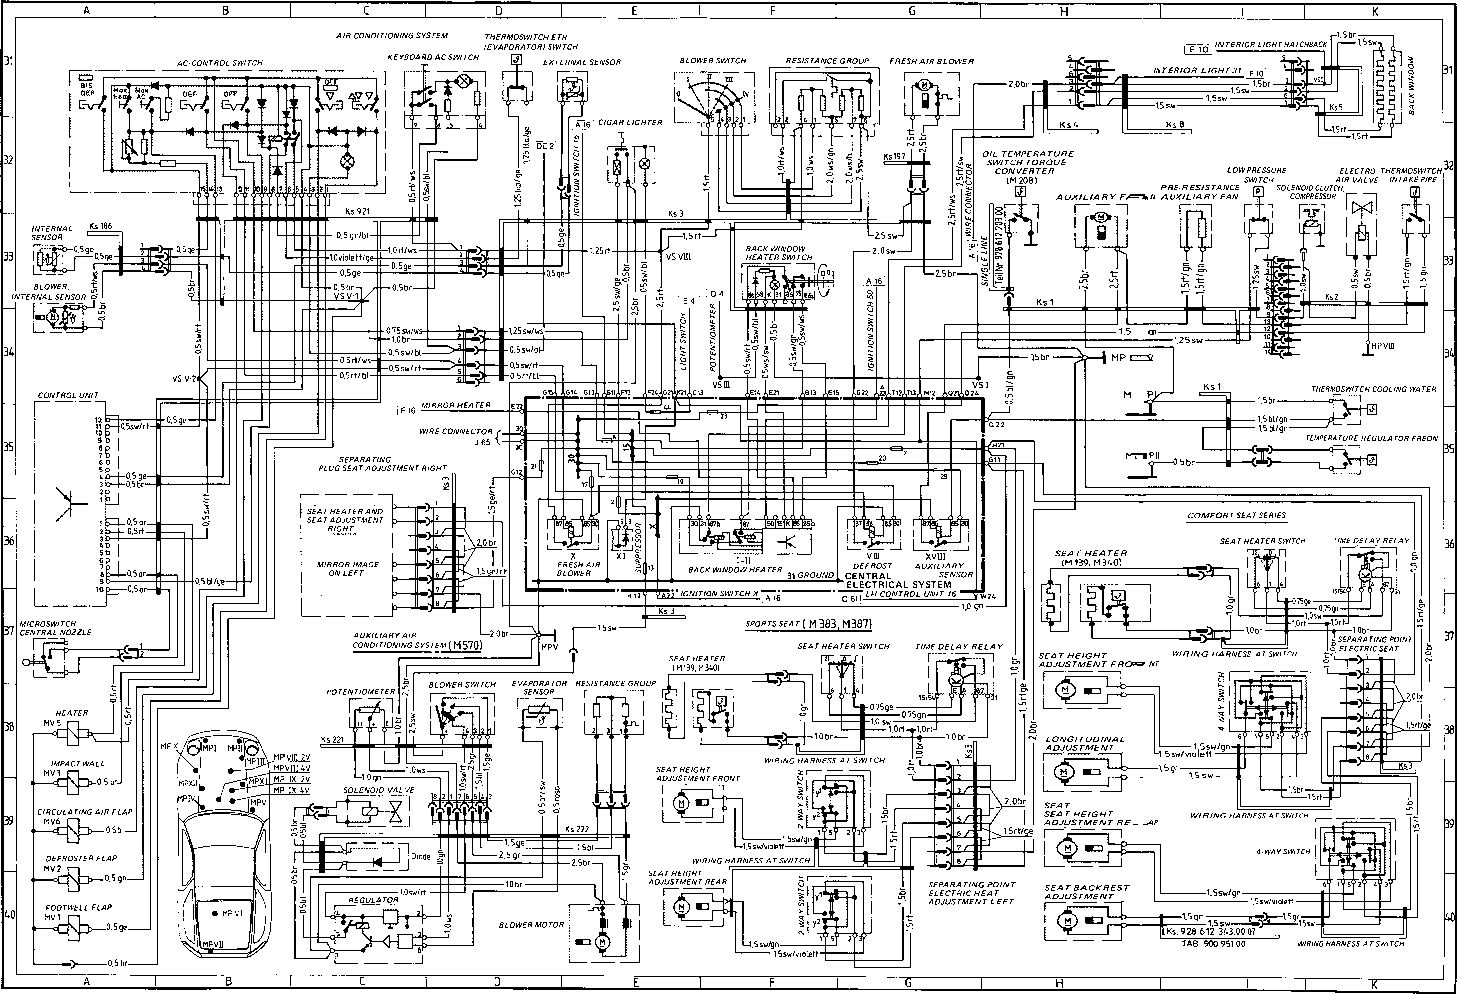 German Electrical Schematic Wiring Diagram - Product Wiring Diagrams •